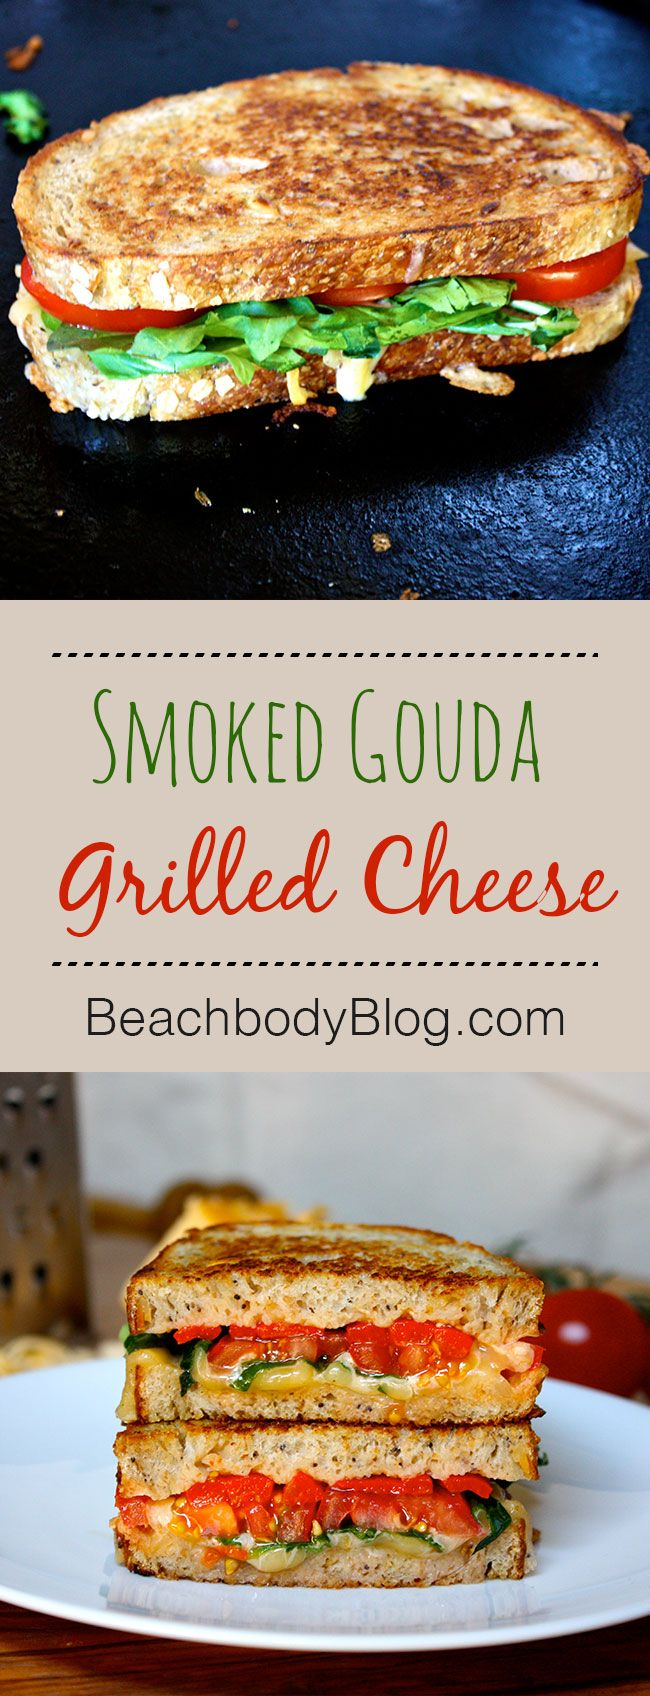 There is something so comforting about a grilled cheese sandwich. Crunchy on the outside, gooey on the inside with delicious melted cheese. Our yummy version uses smoked gouda, a boldly flavored cheese, so you can use less and still love !  Team Beachbody www.beachbodycoach.com/ELLECRAIB